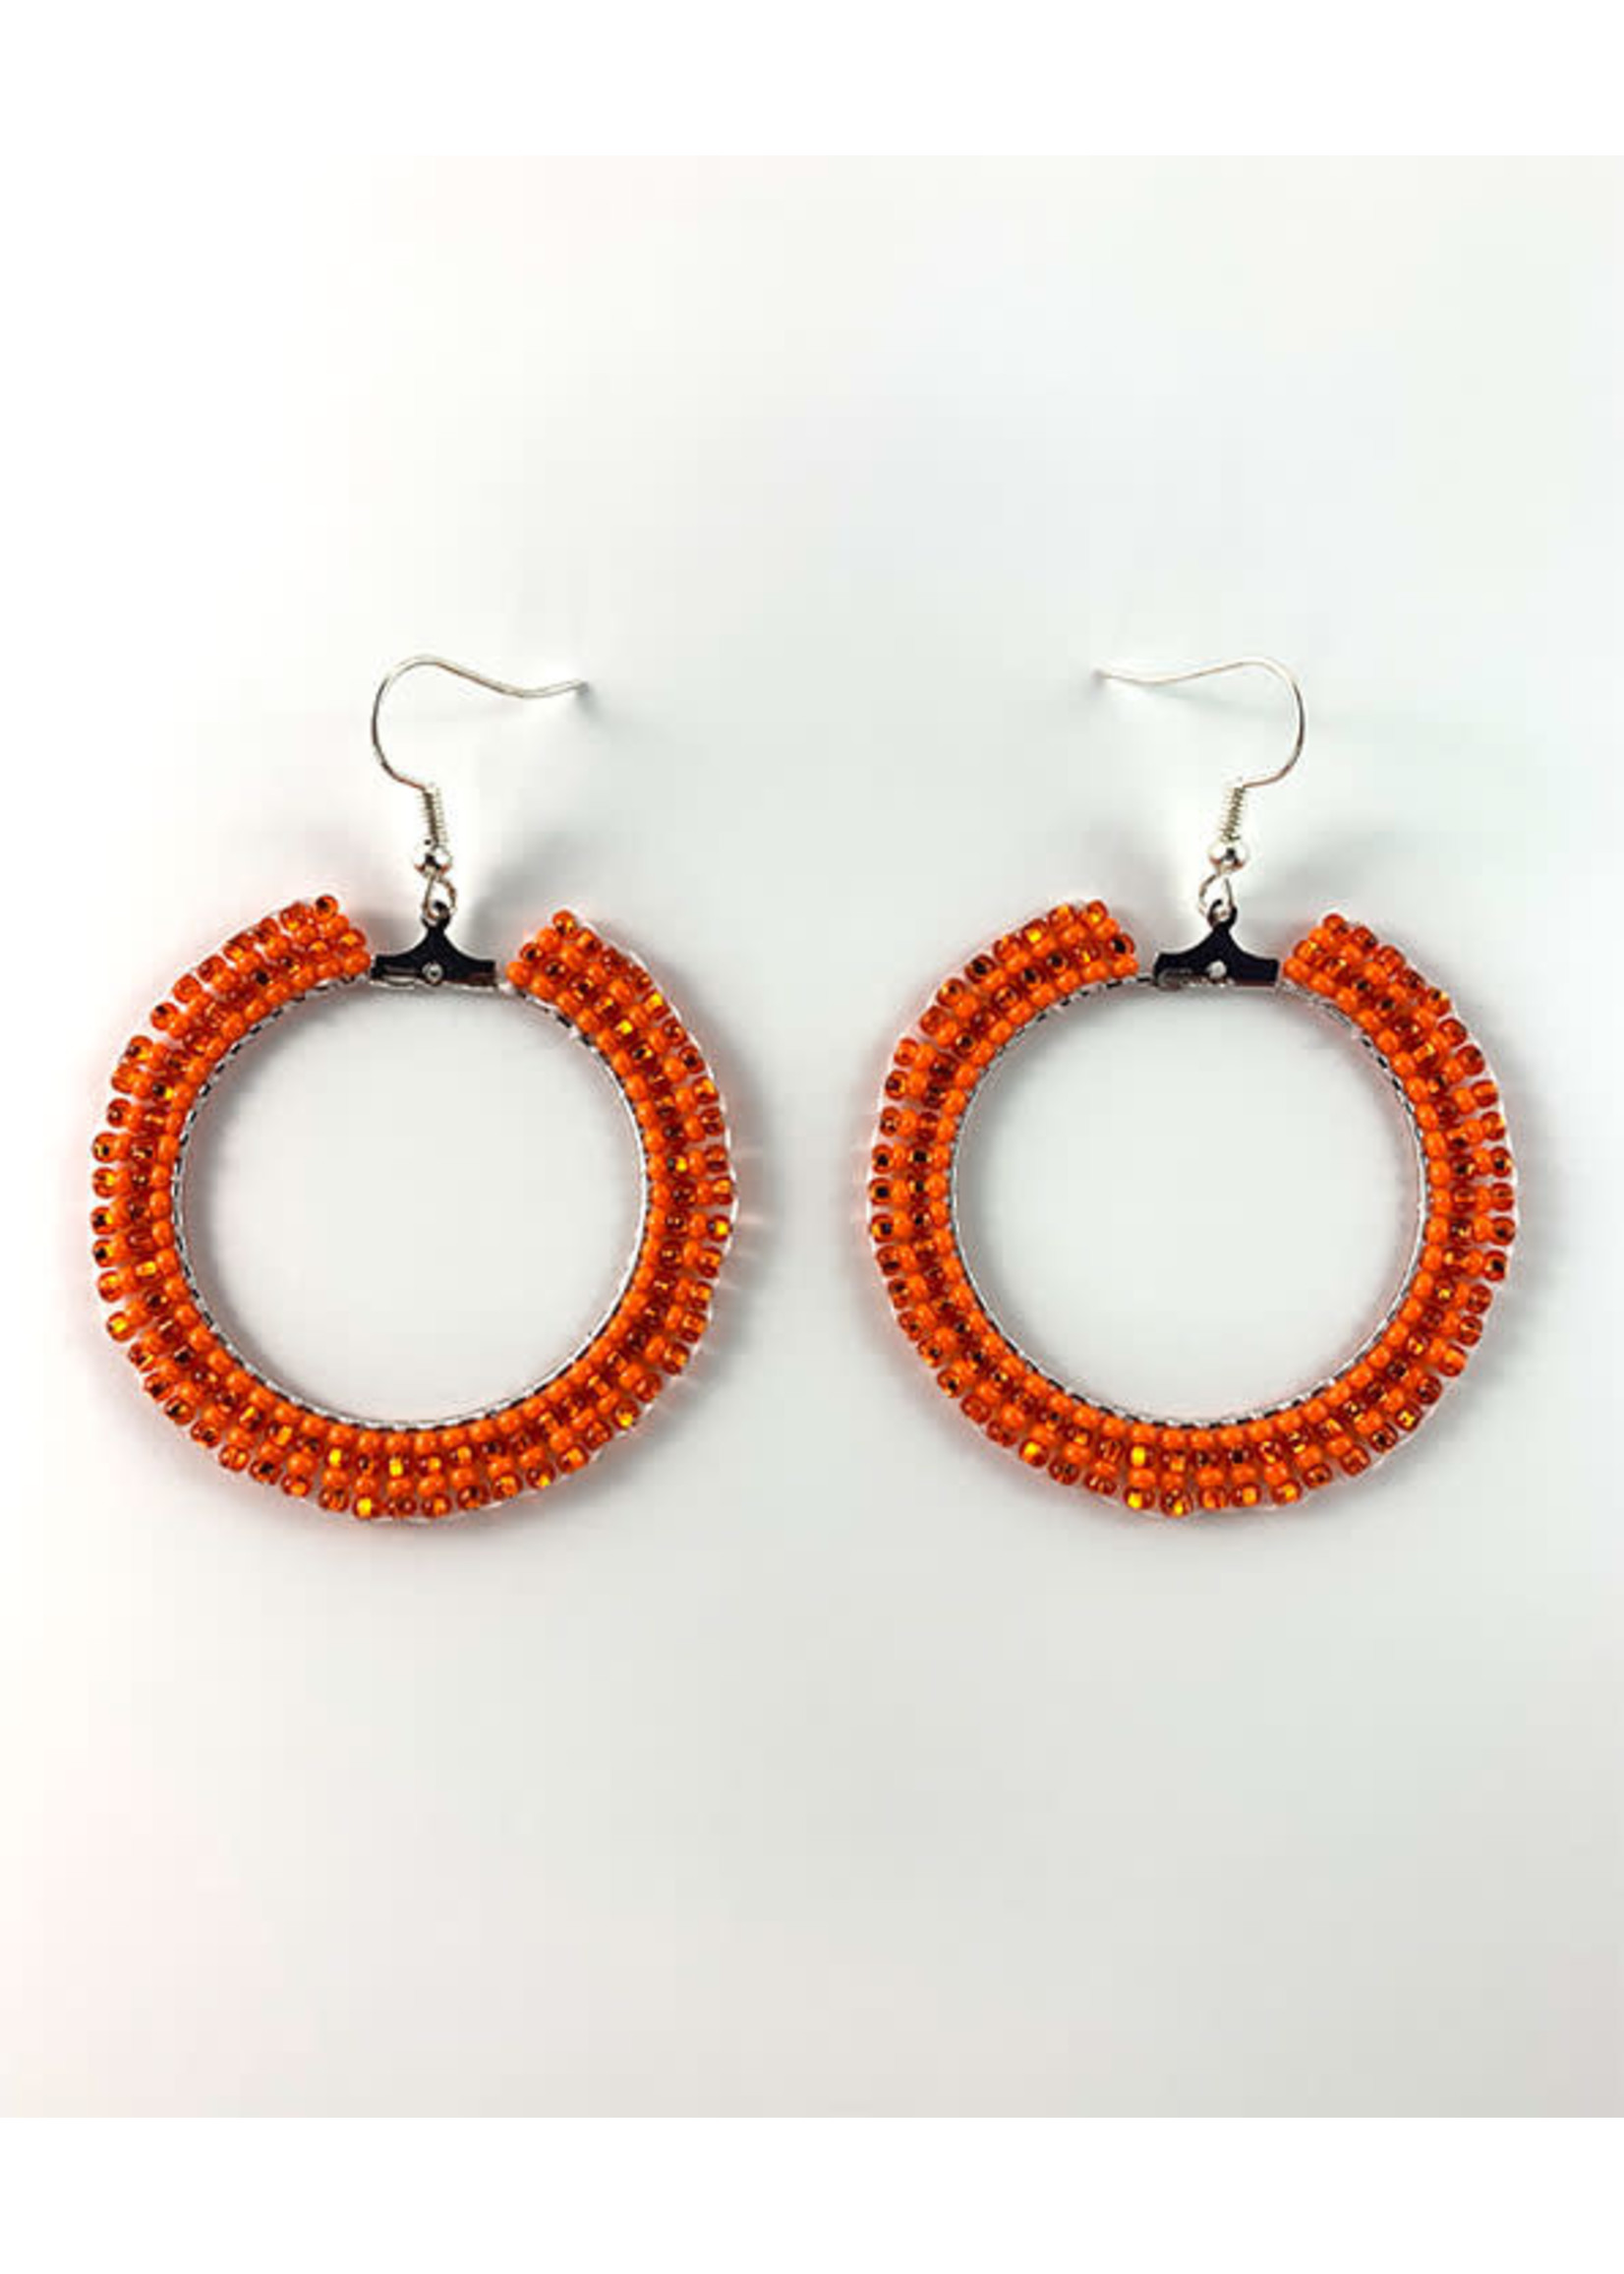 Beaded Earrings Hoops Silver Lined Orange and Opaque Orange (SOLD)